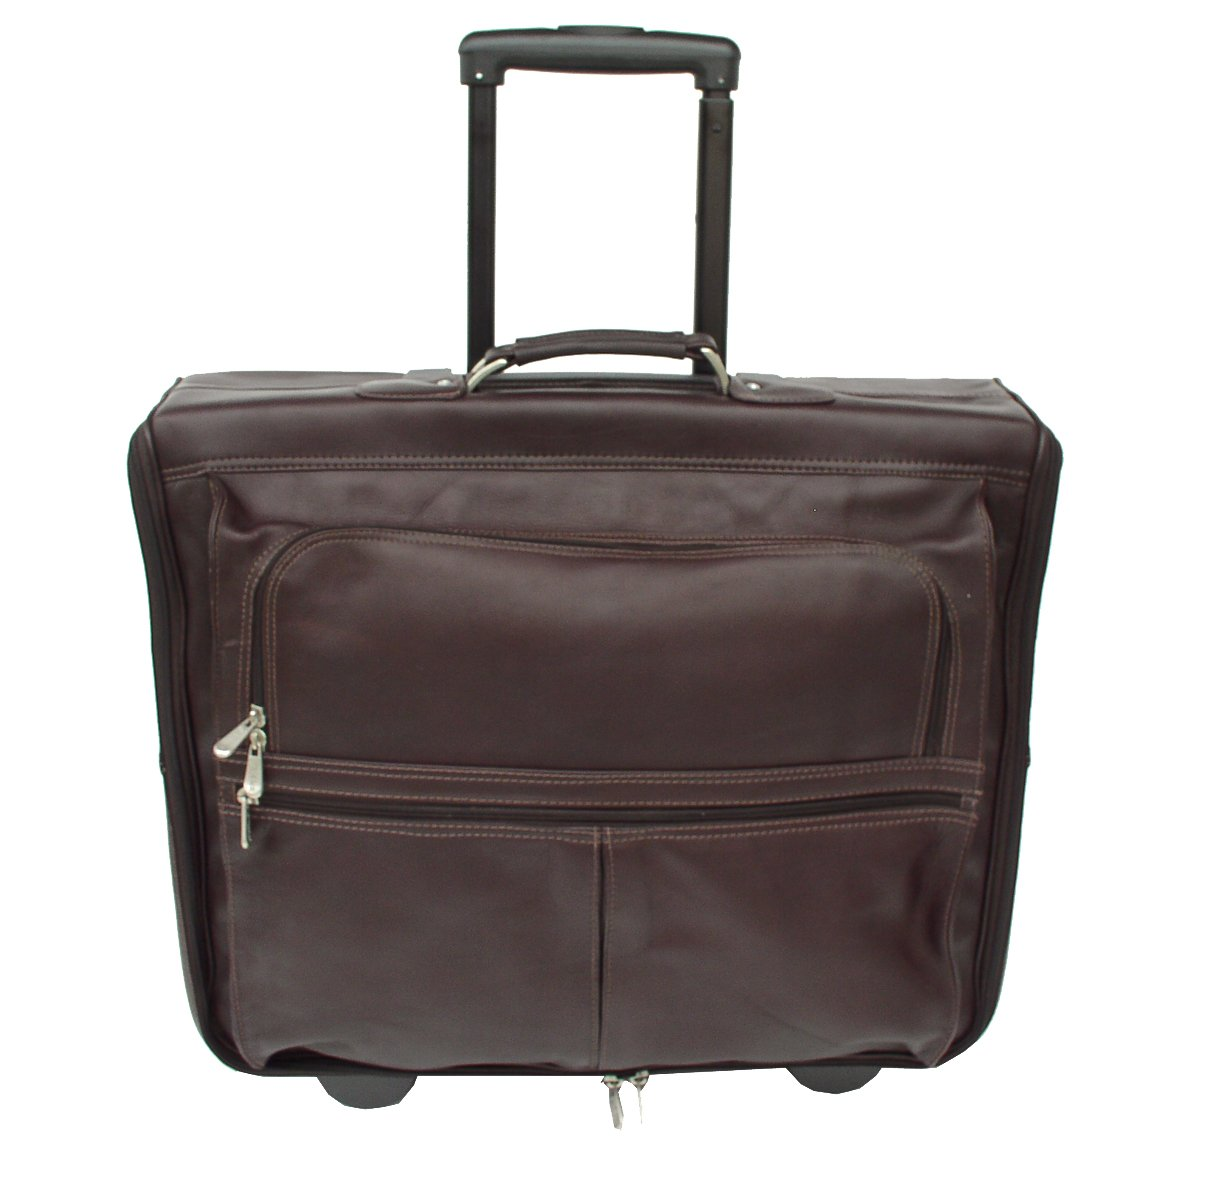 Piel Leather Traveler Garment Bag on Wheels in Chocolate by Piel Leather